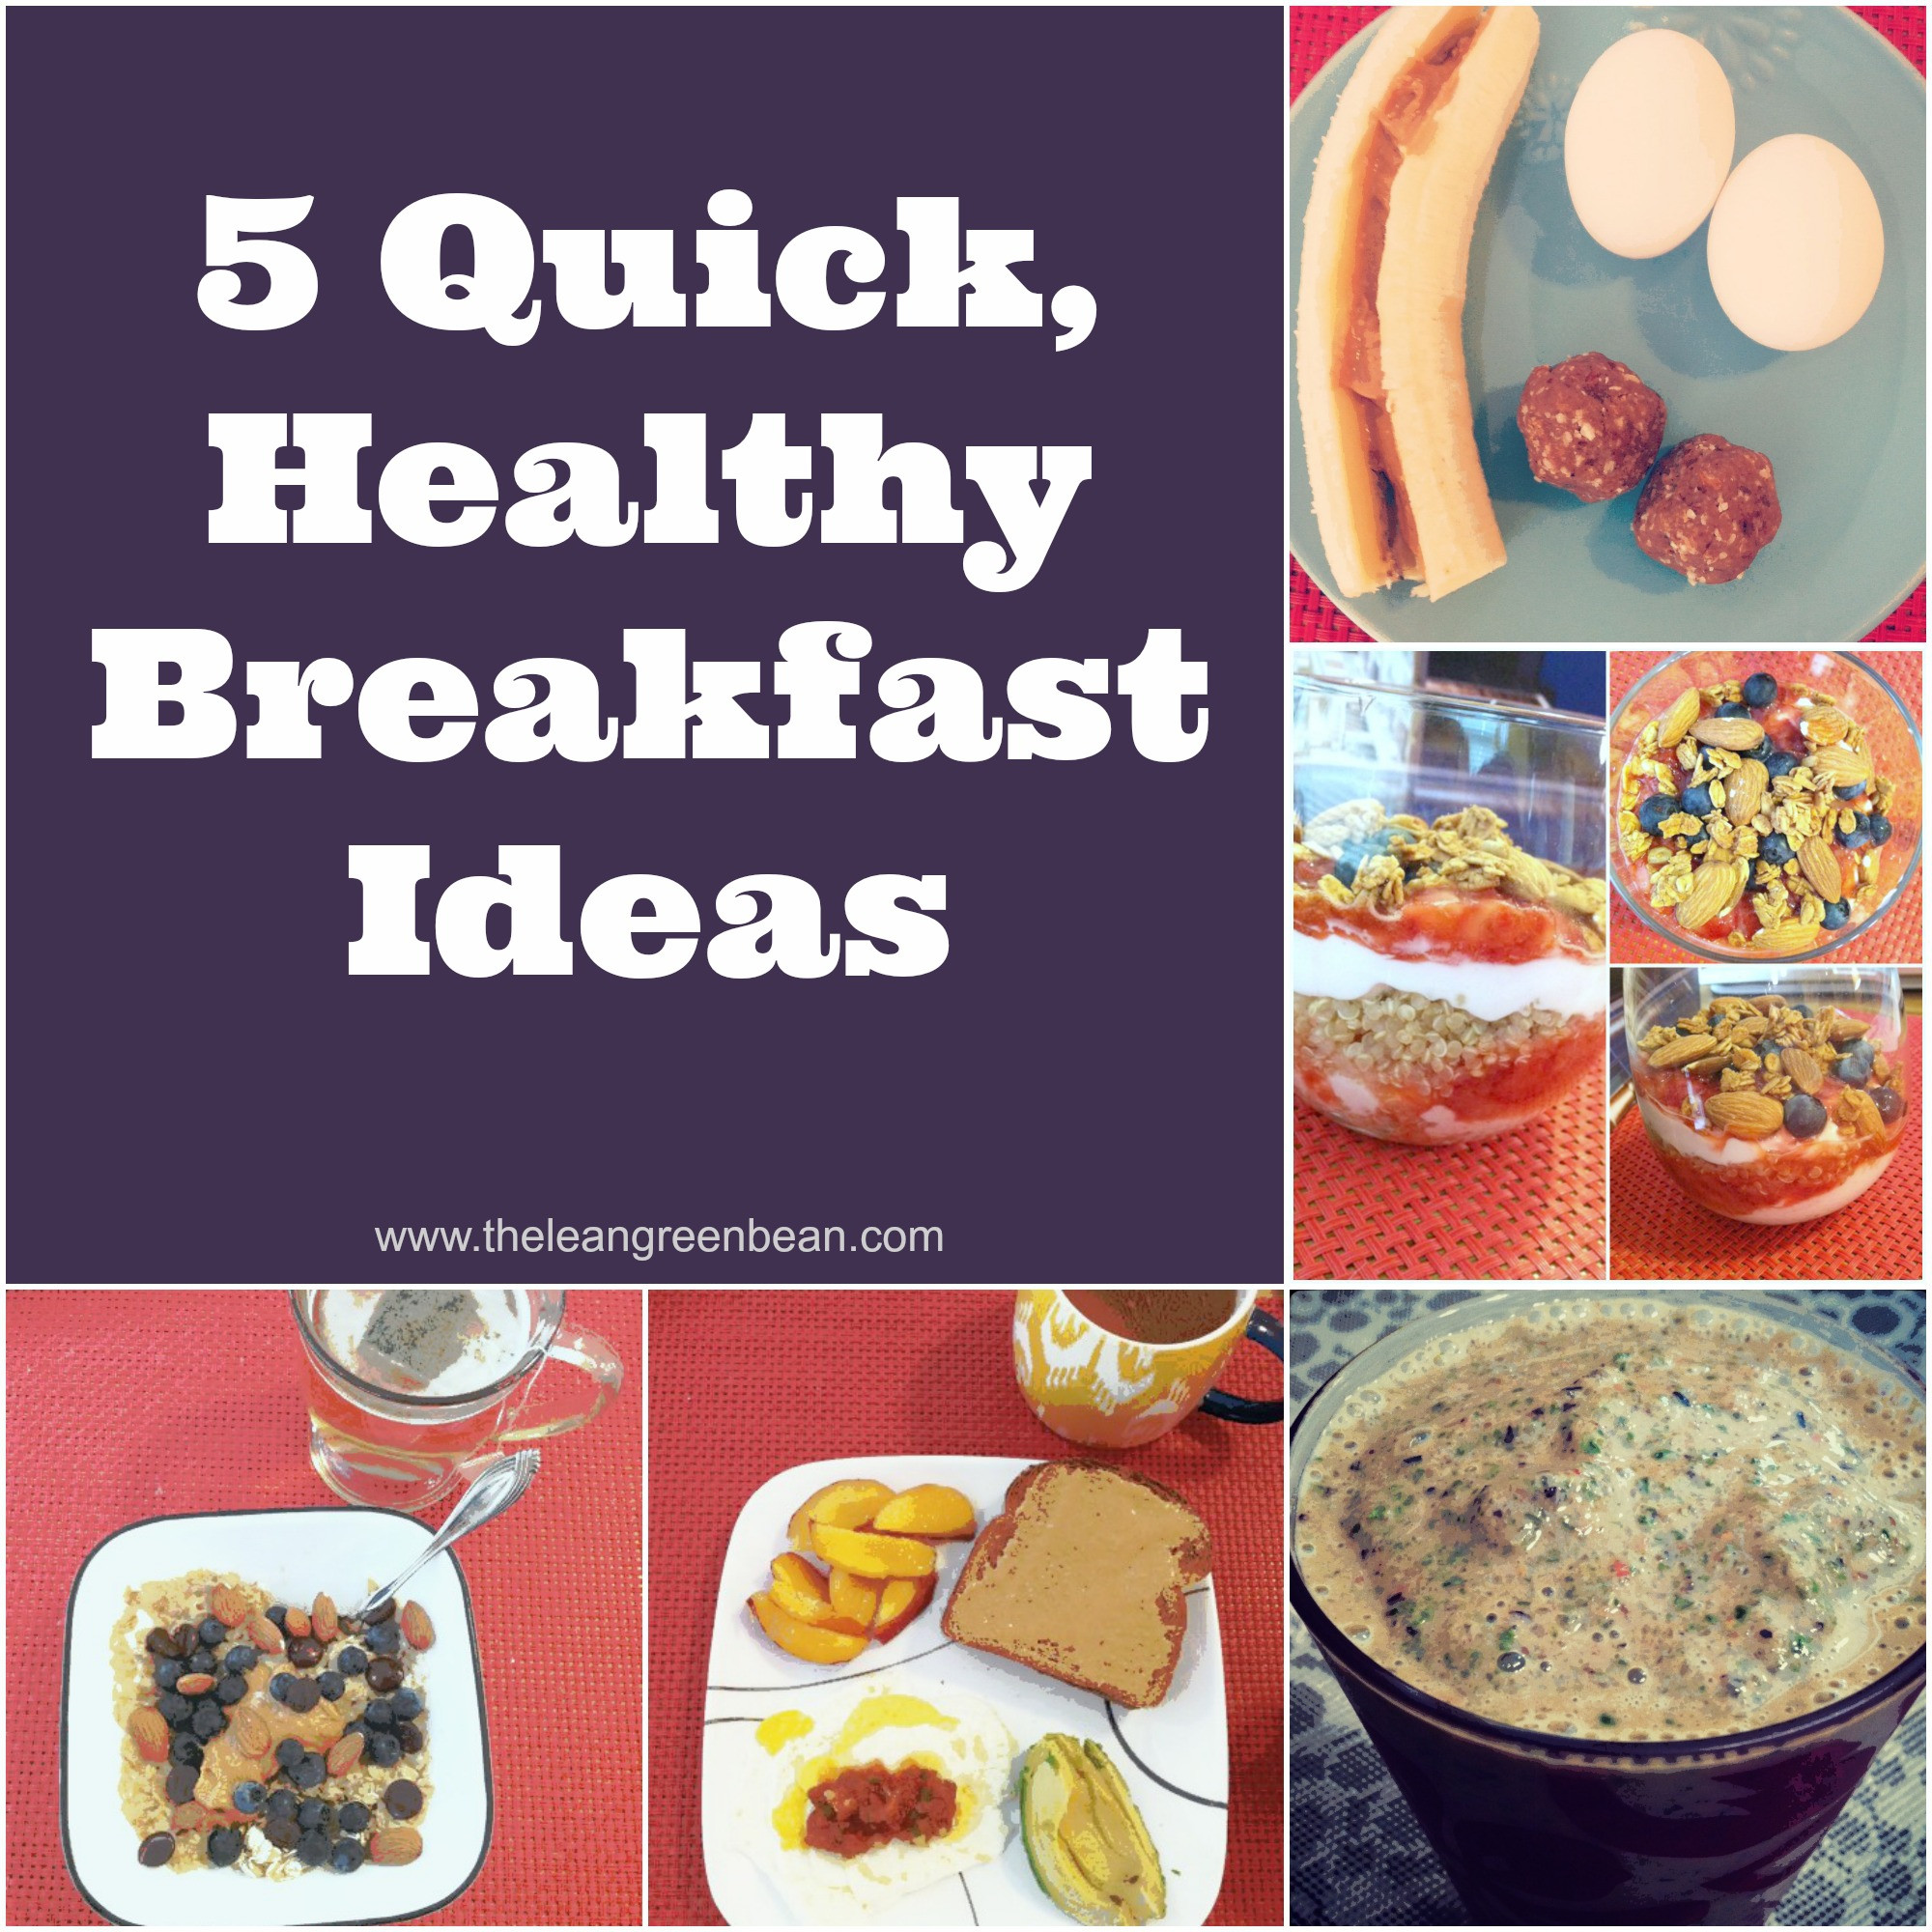 Fast And Healthy Breakfast  5 Quick Healthy Breakfast Ideas from a Registered Dietitian